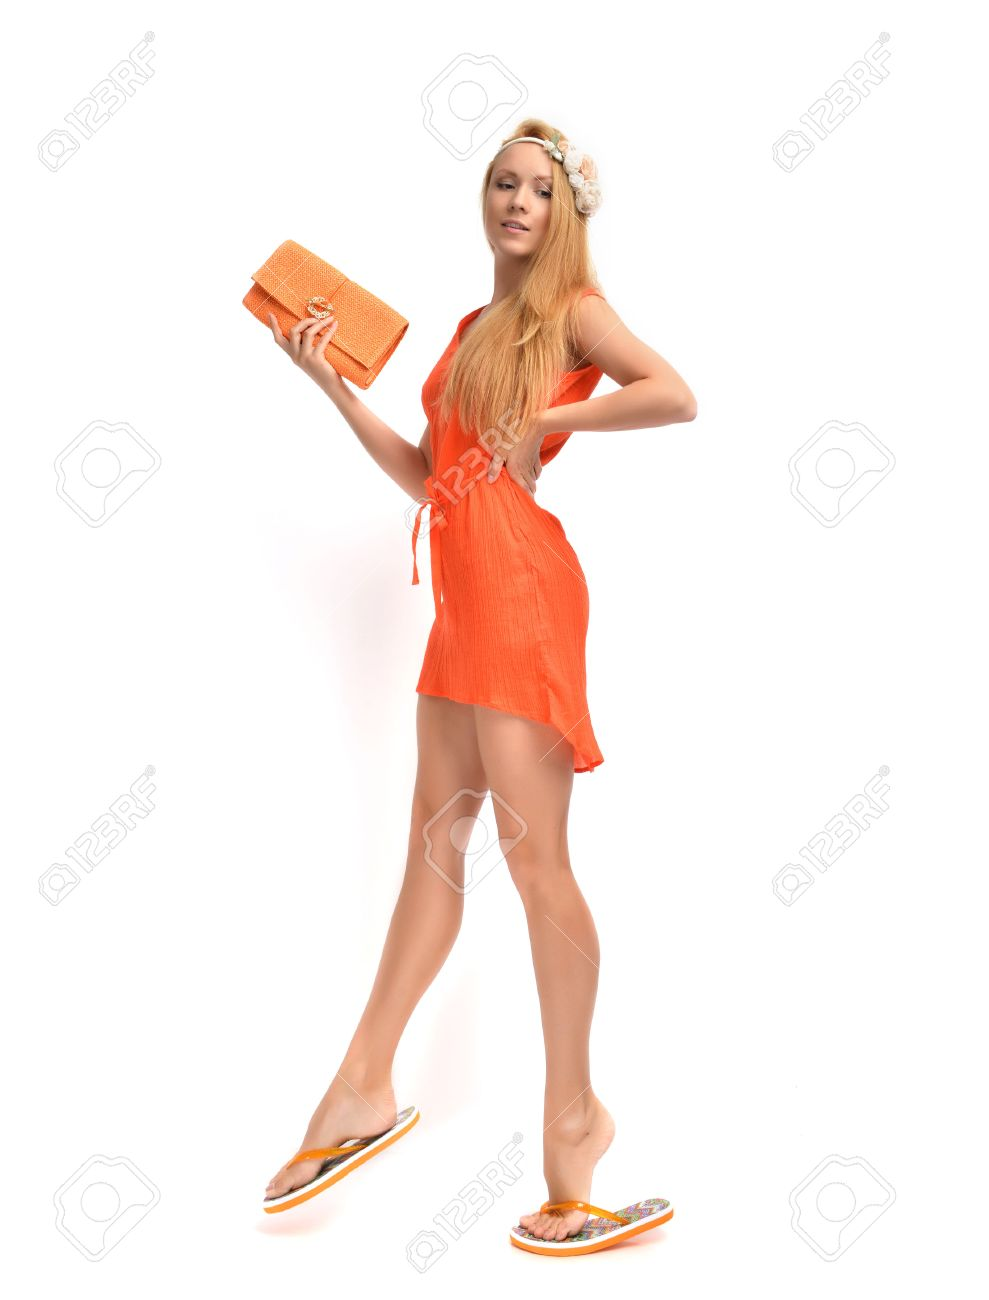 5833beb65120 Stock Photo - Young beautiful caucasian red hair woman walking in flip flops  and gorgeous orange dress with modern clutch isolated on a white background